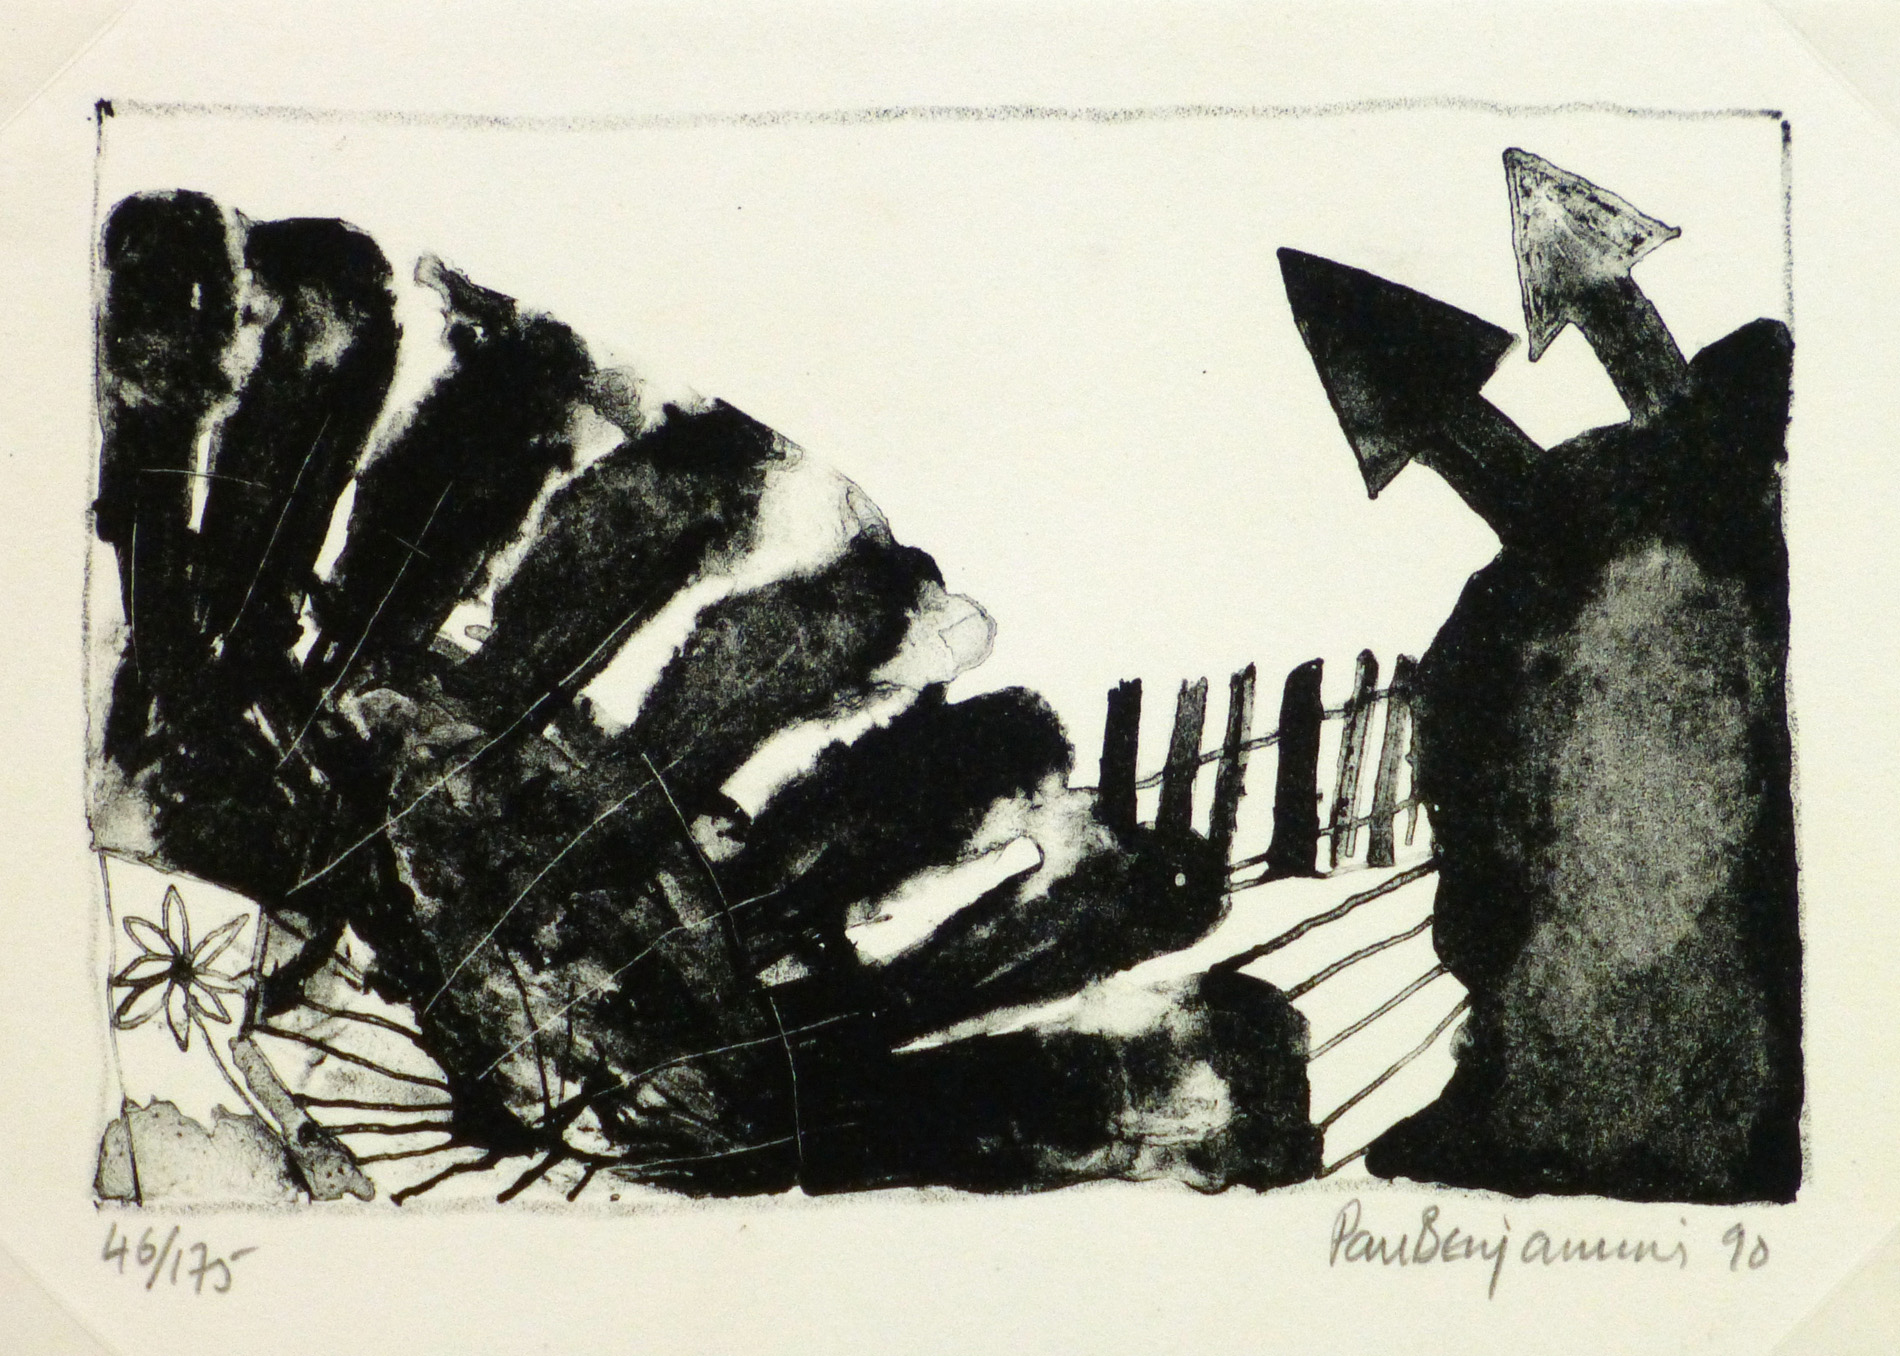 Arrows Abstract Lithograph-main-9289K